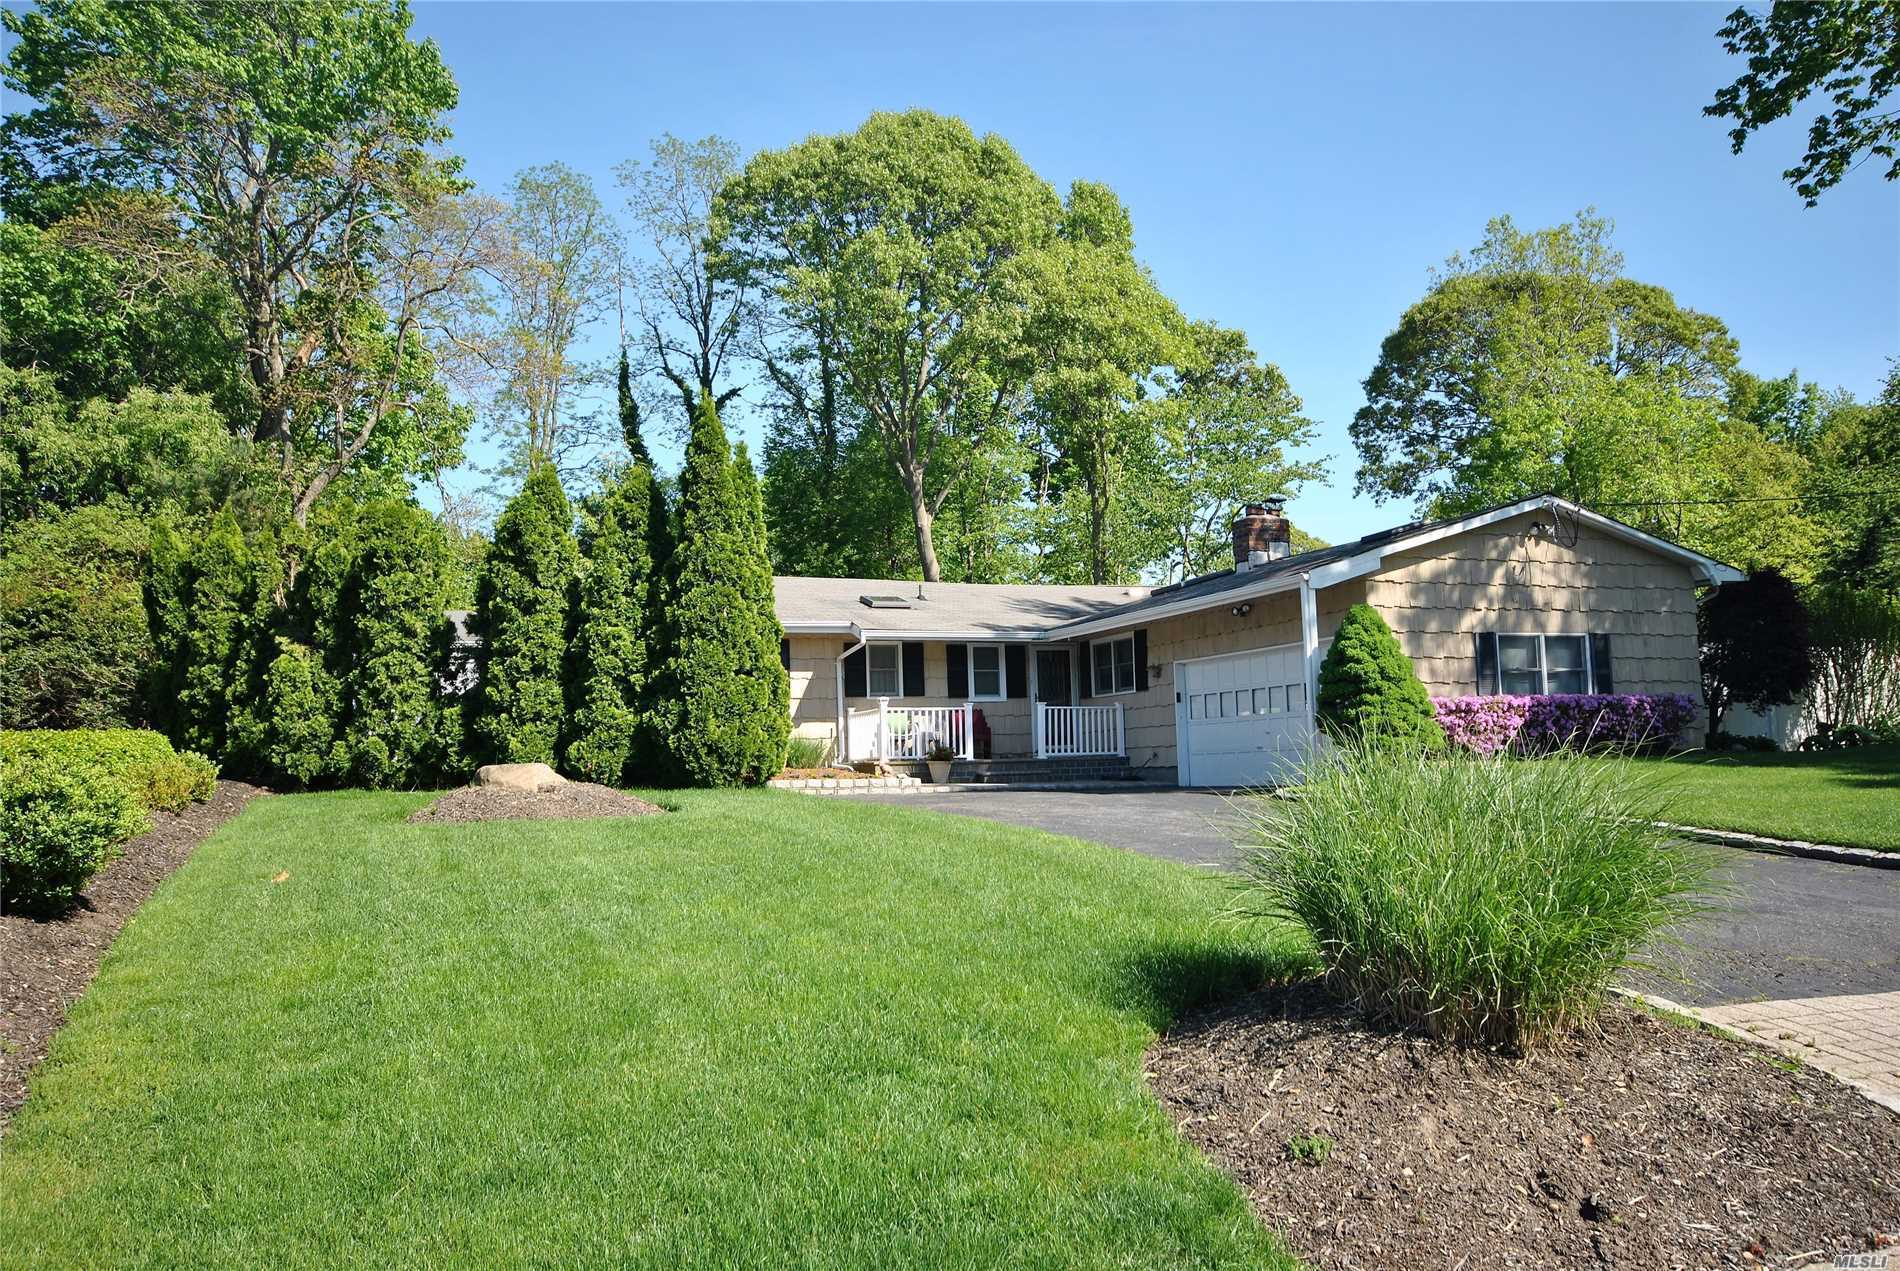 12 Rustic Rd - Miller Place, New York